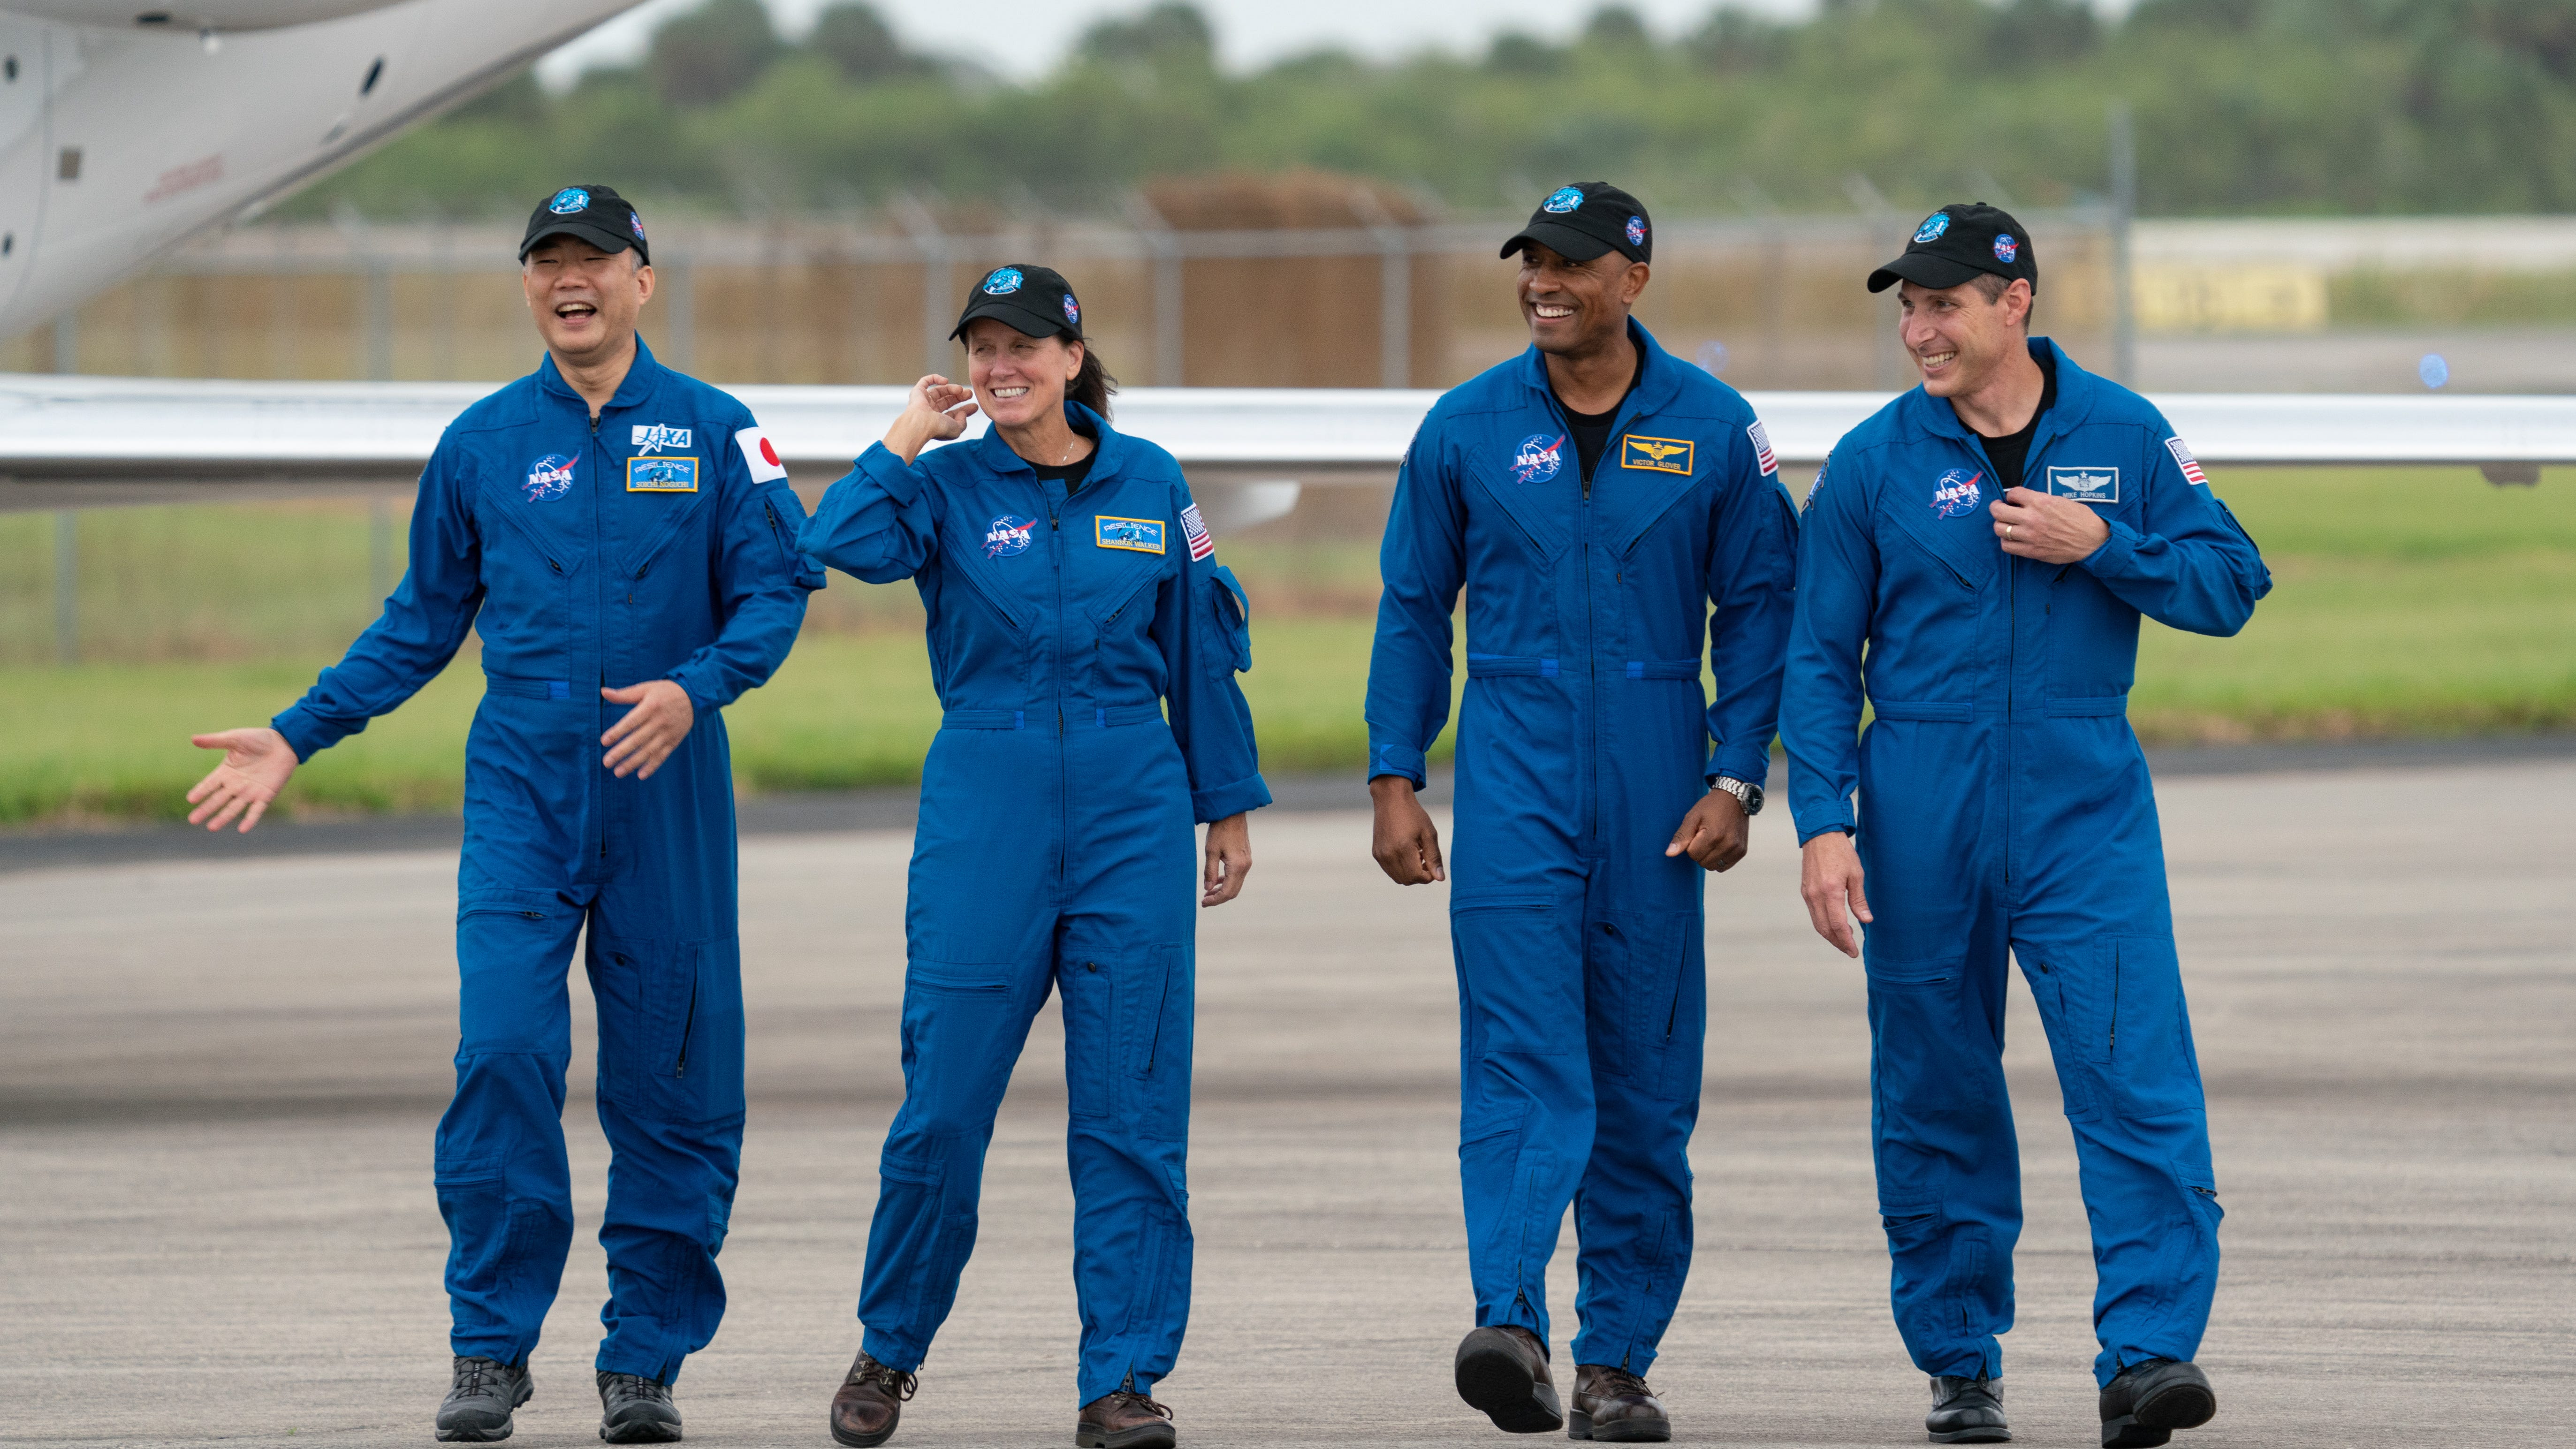 The four-person SpaceX Crew-1 astronaut team arriv